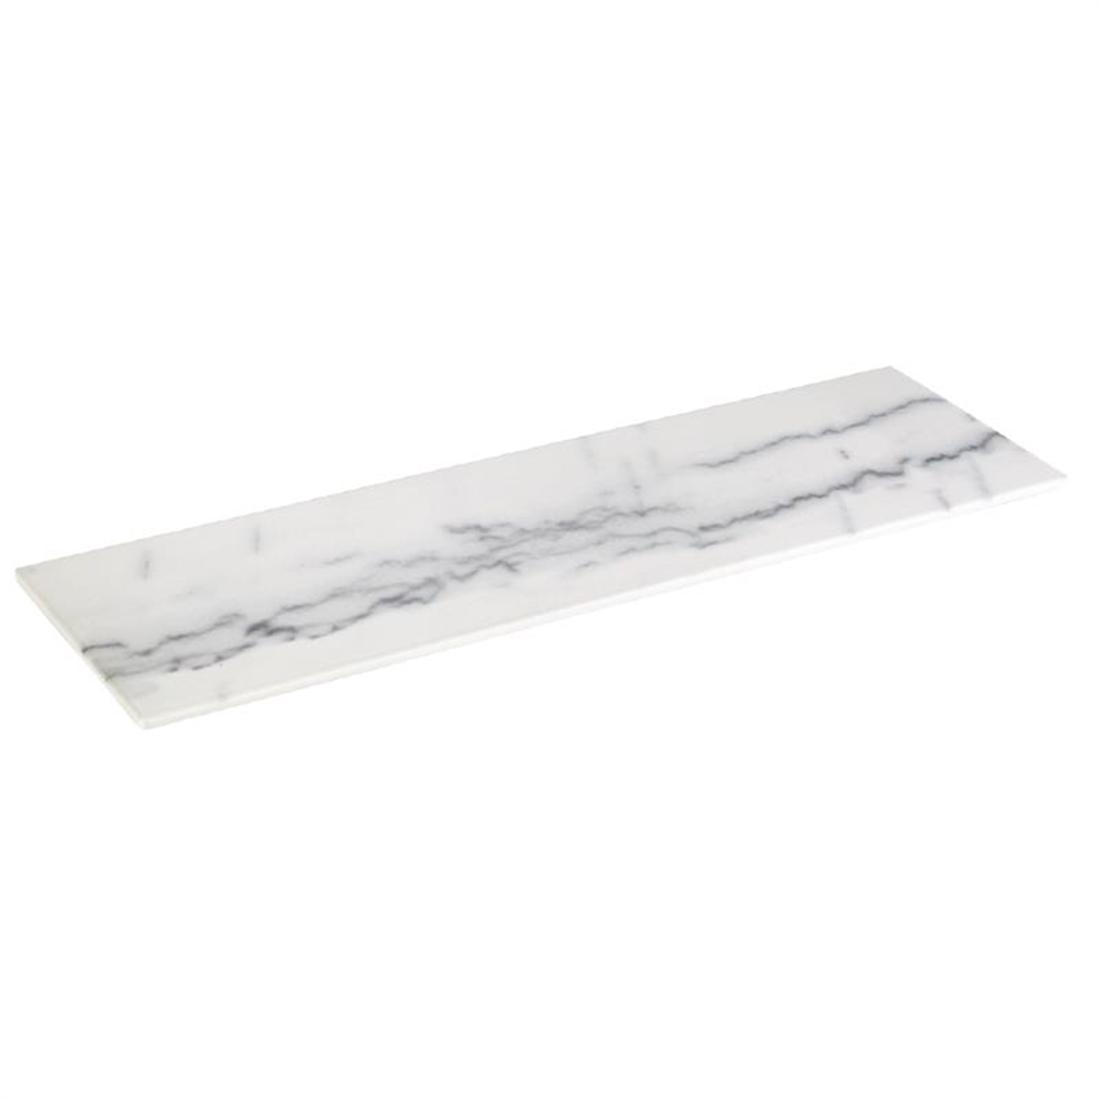 HC756 - Z-DISCONTINUED APS Melamine Tray Marble GN 2/4 - Each - HC756